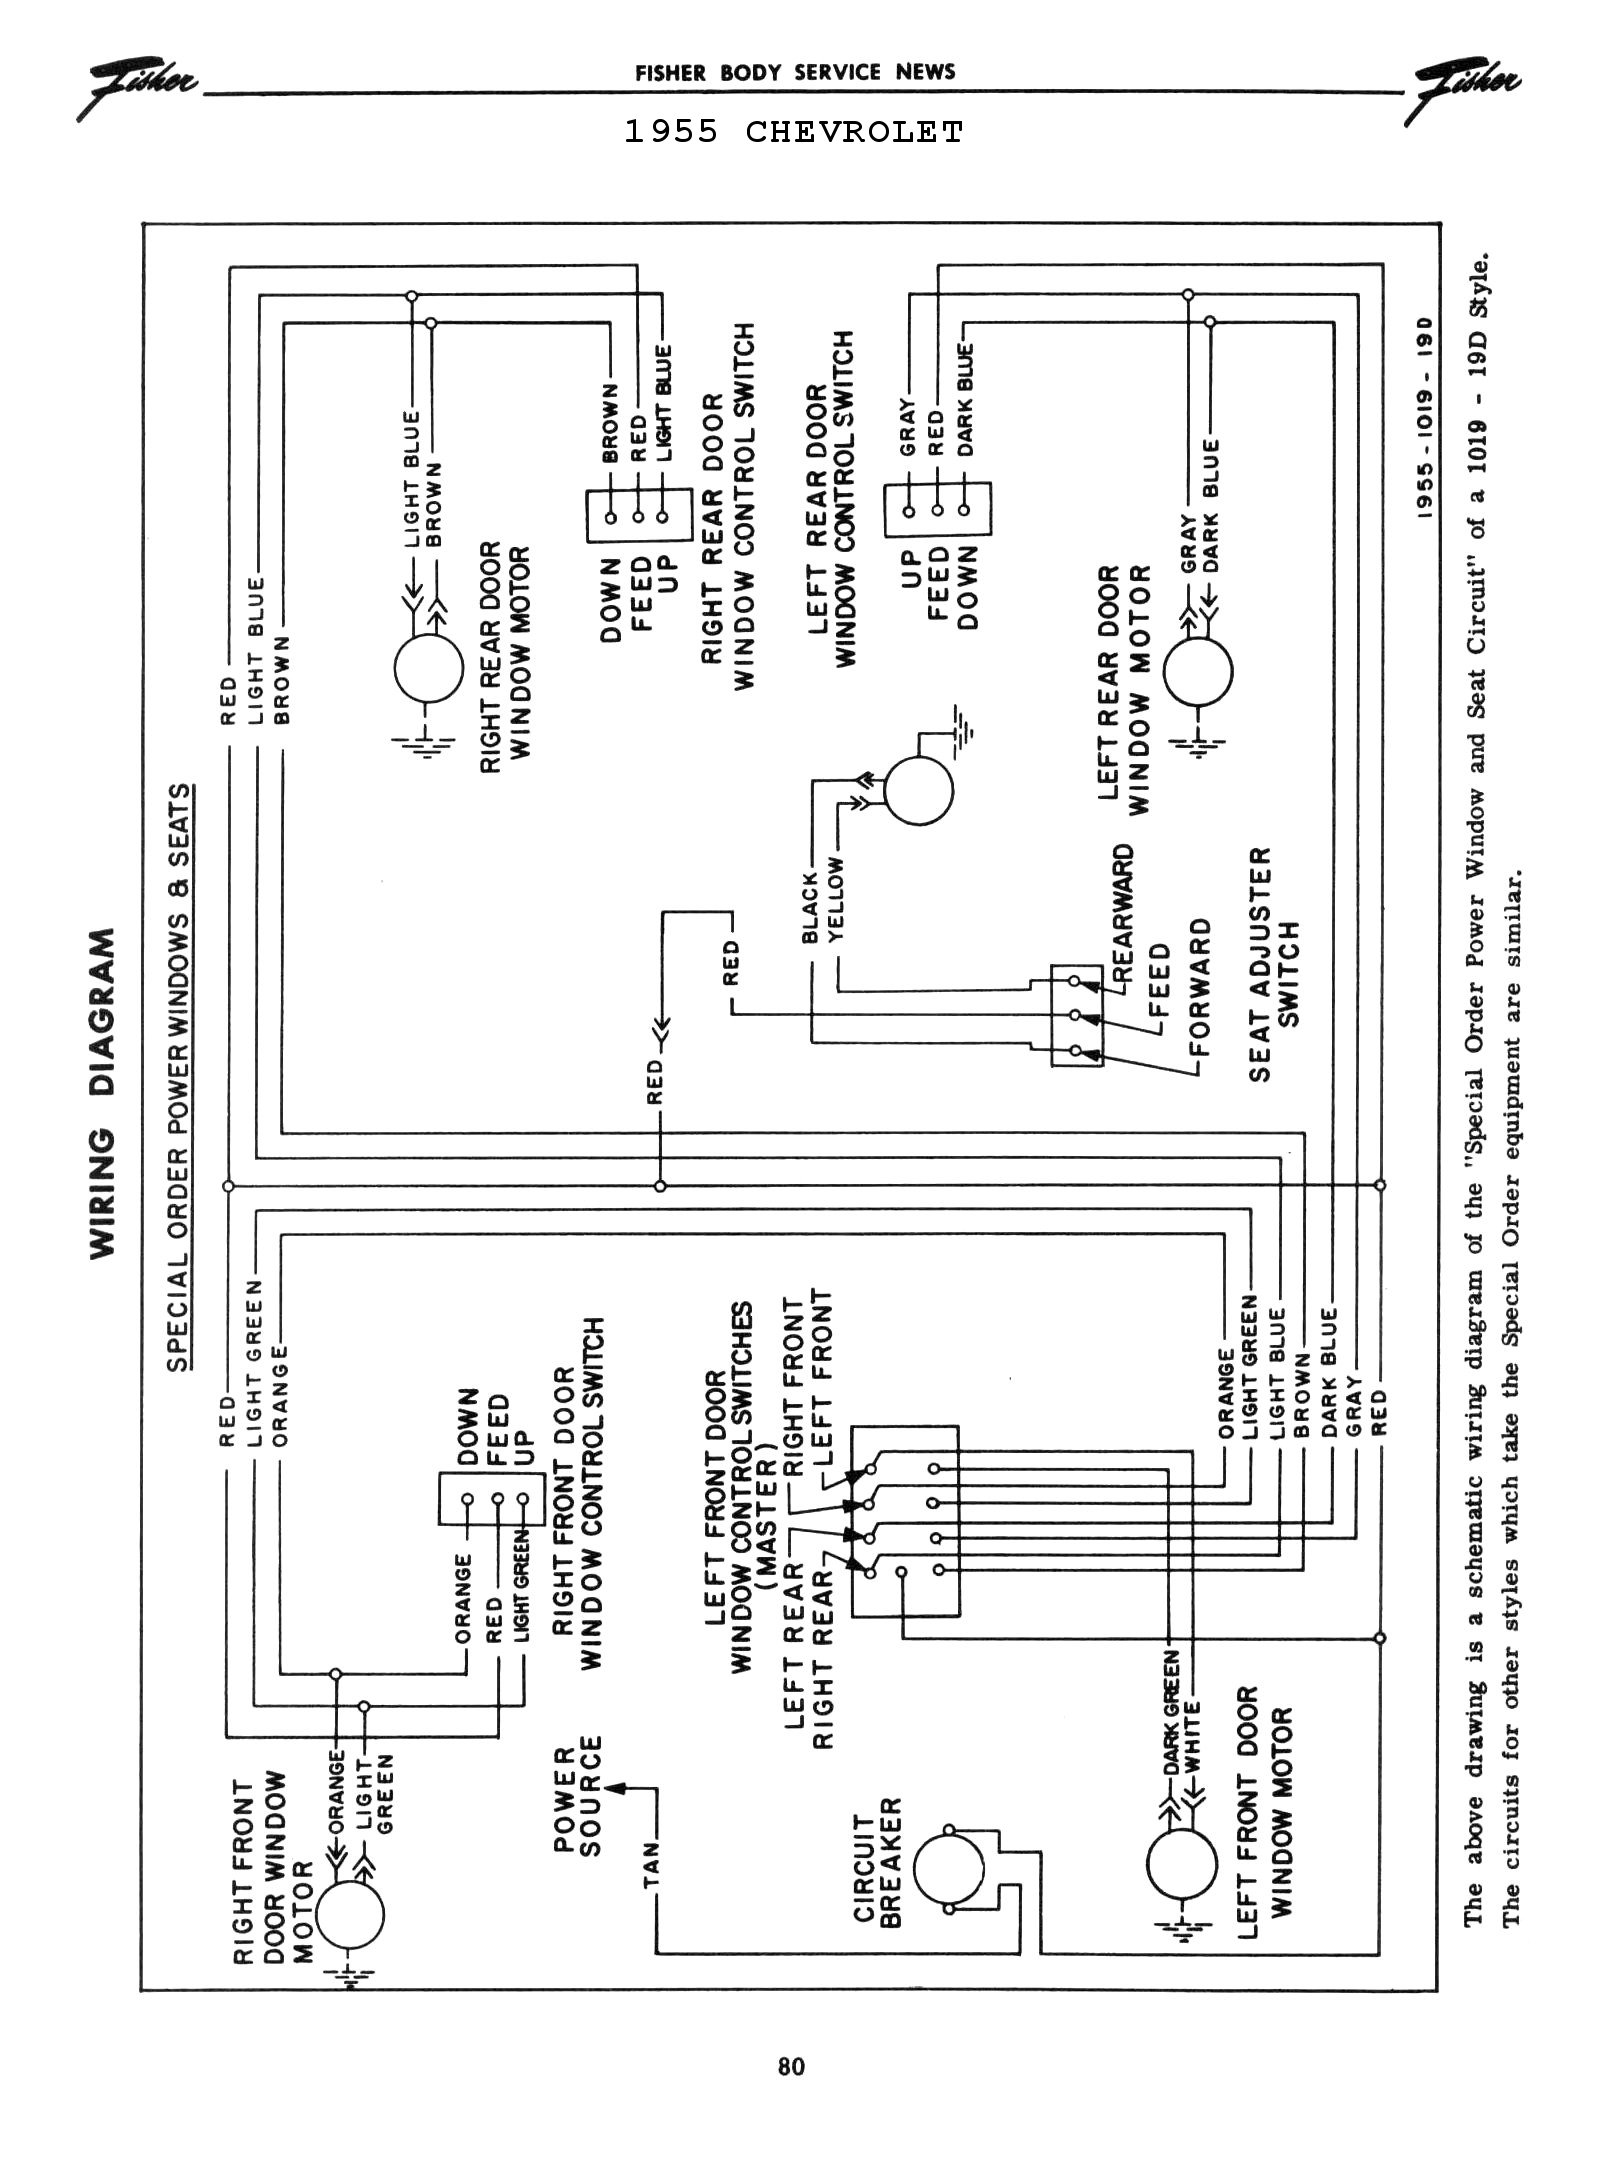 55fsn140180 chevy wiring diagrams 2004 Chevy Trailblazer Wiring-Diagram at reclaimingppi.co